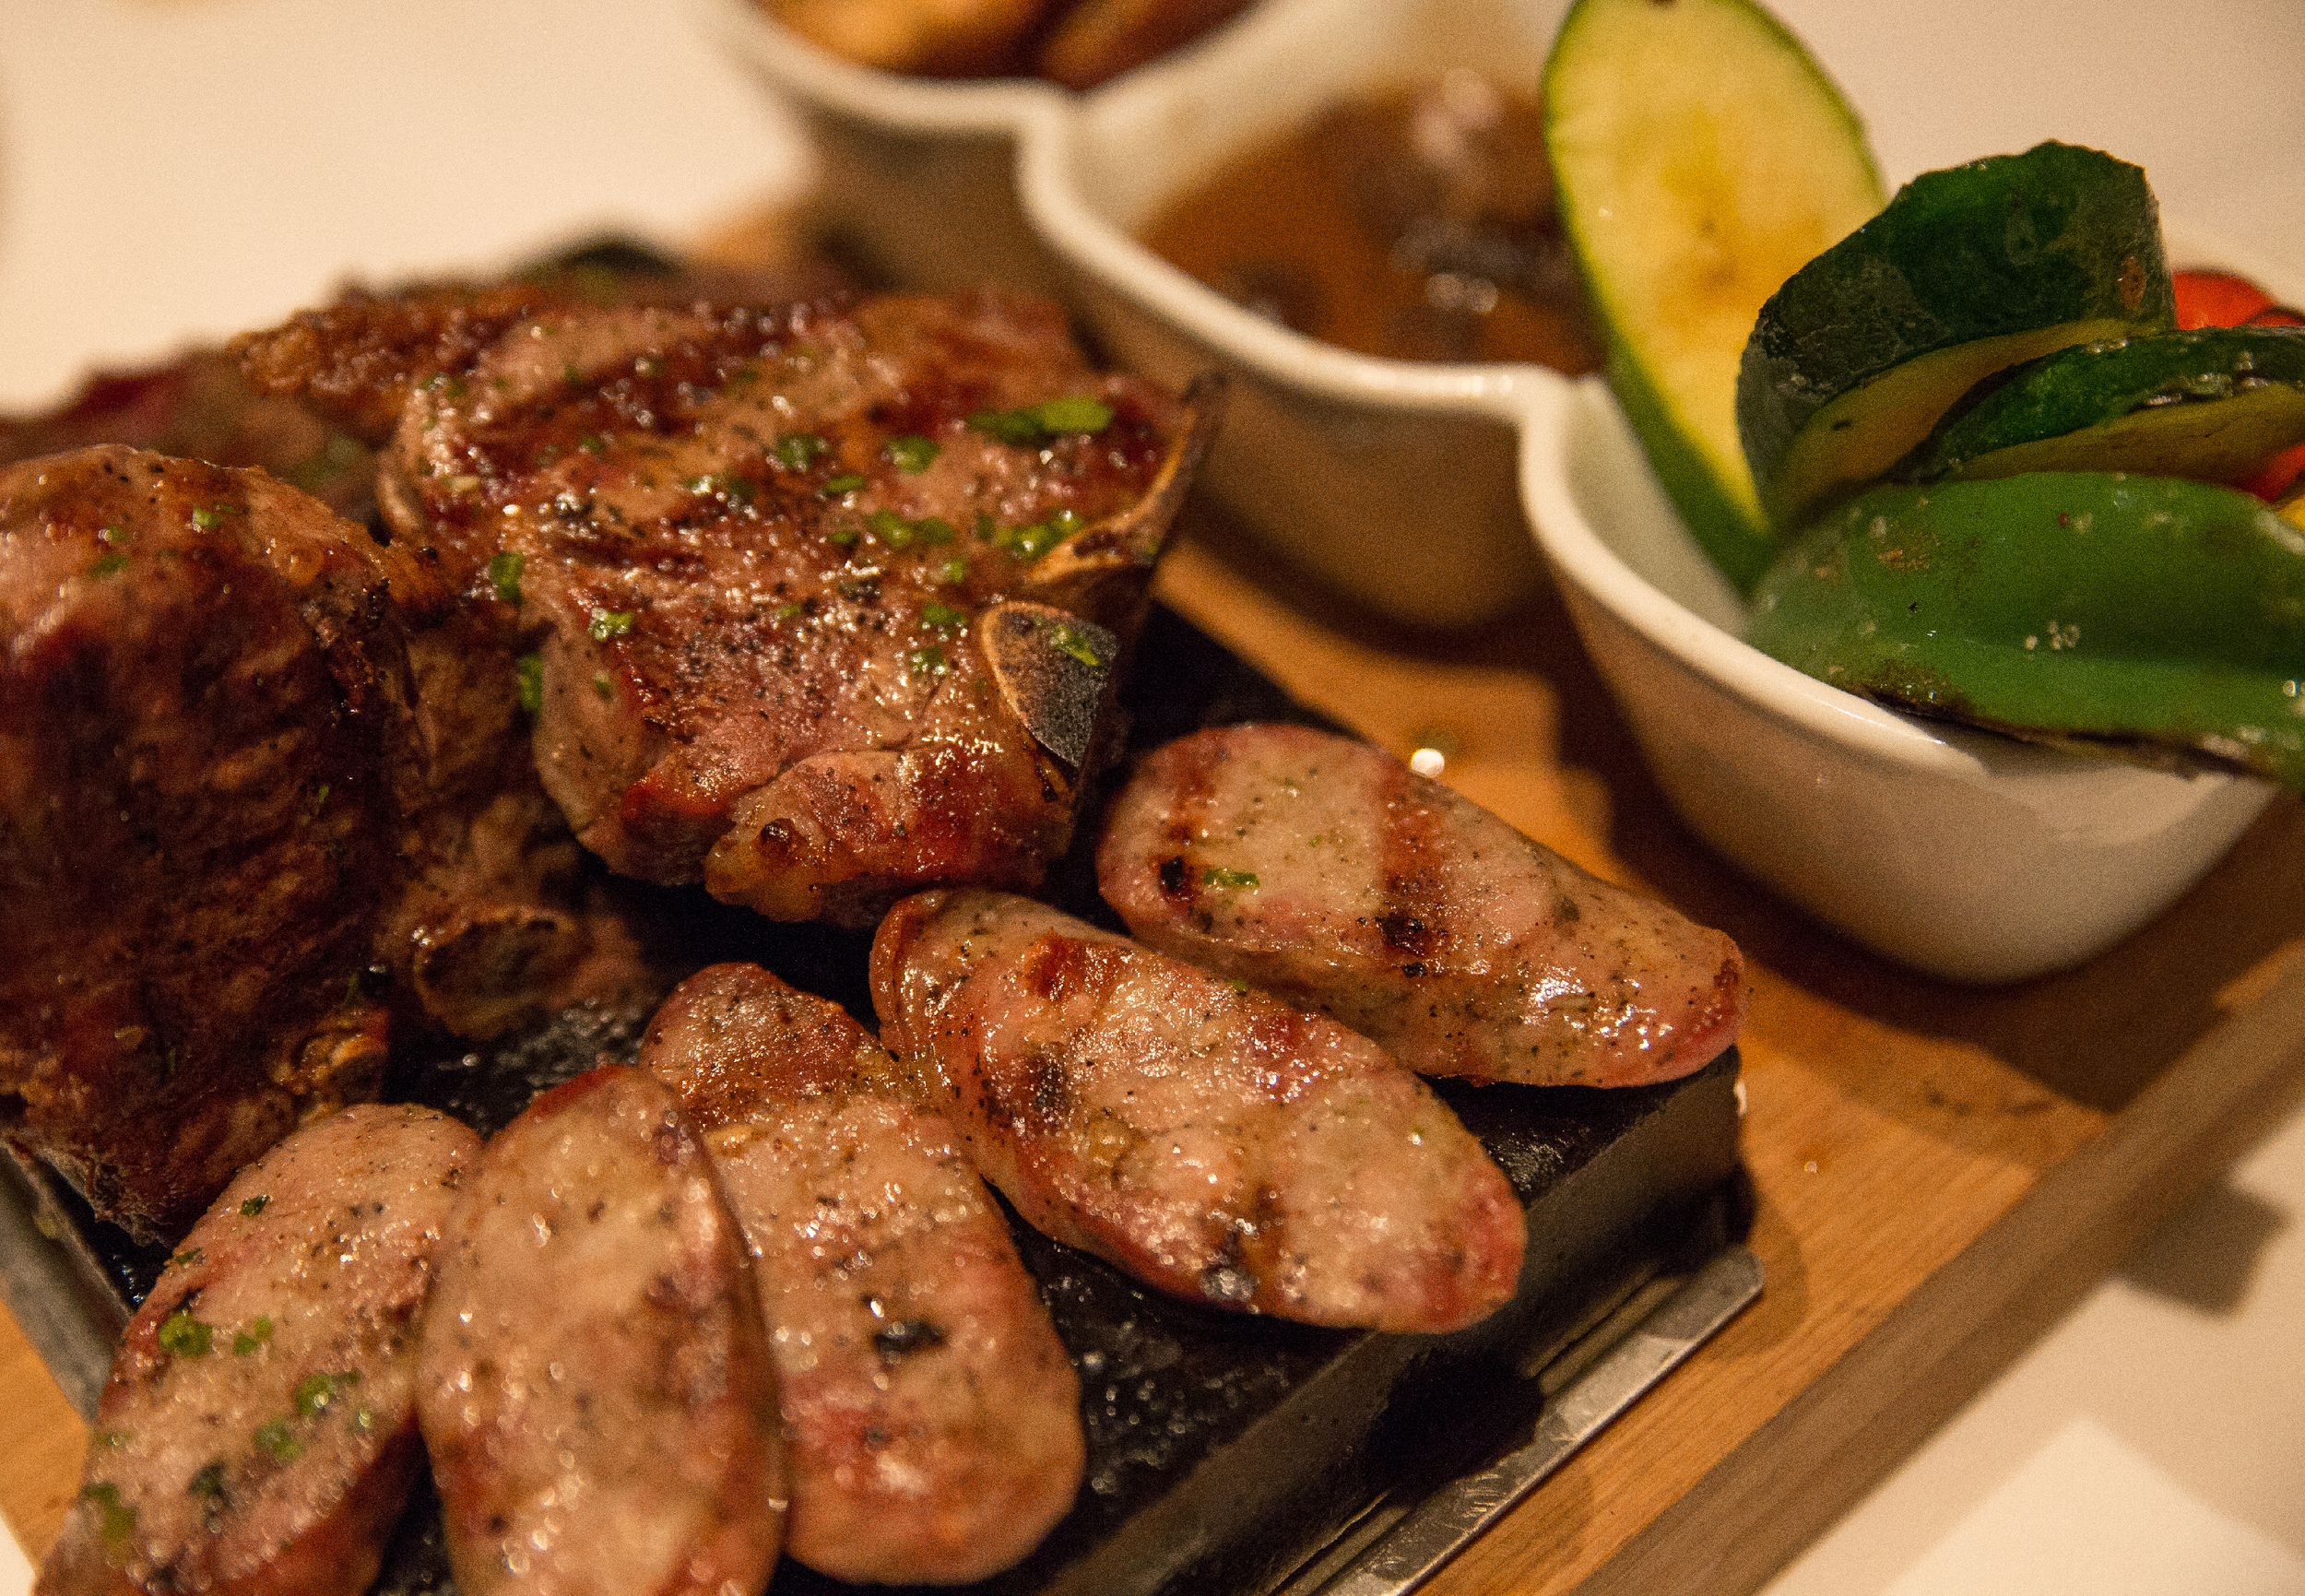 For a true feast, try the the Mixed Grill For Two which offers up assorted cuts of sweet sausage, skirt steak, short ribs, chicken, lamb T-bone, black sausage, season vegetables and potato fries. (Photo / Craig D'Andrea).